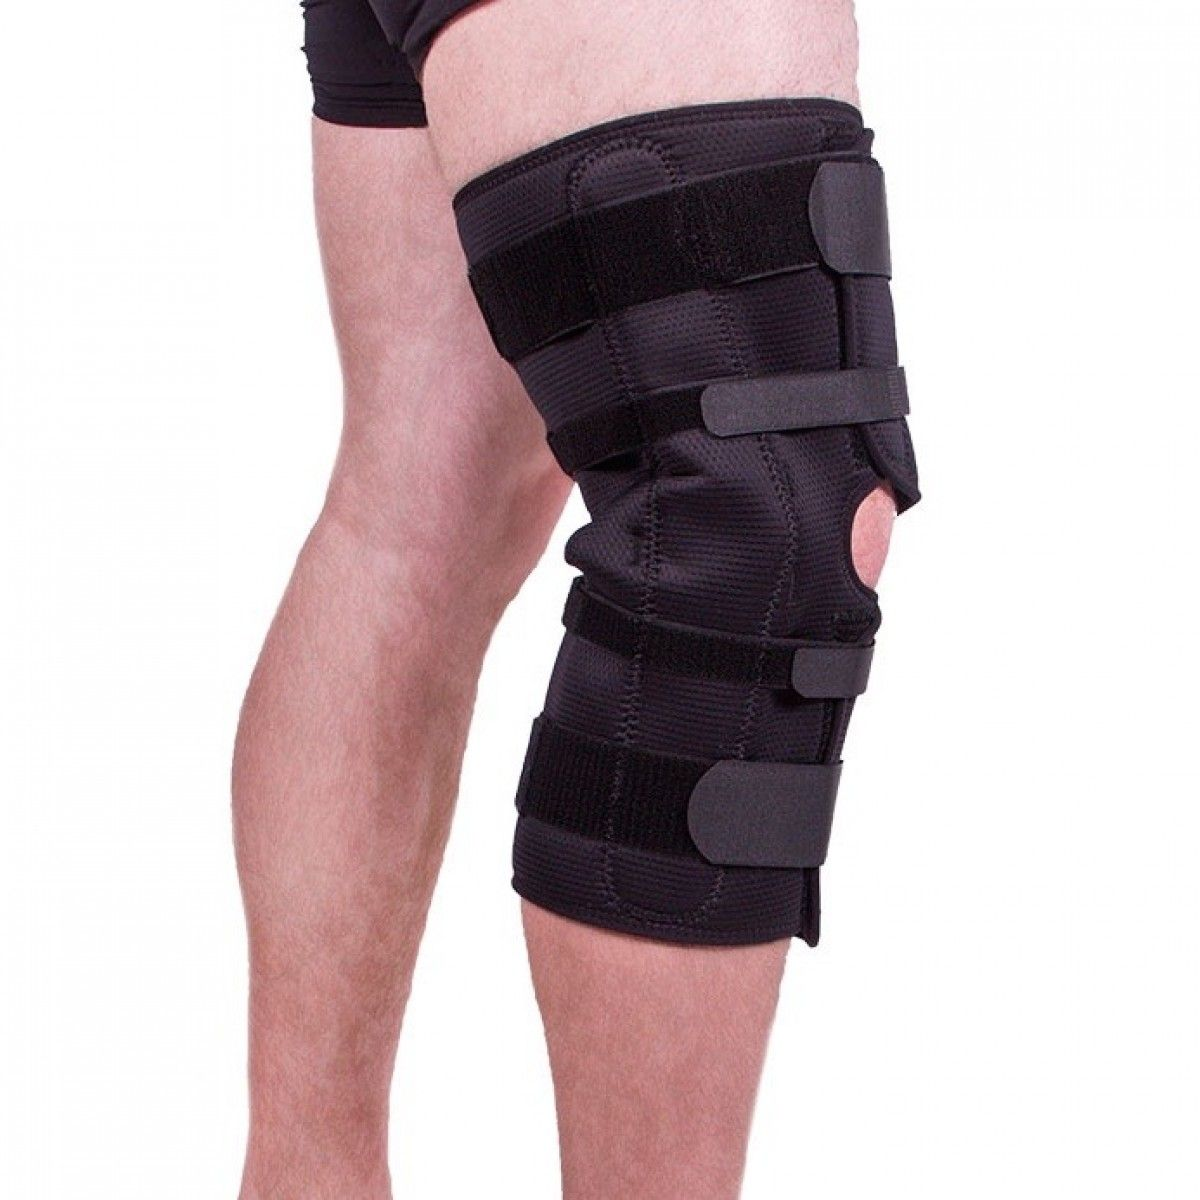 BraceAbility Big u Tall Knee Brace for Bigger MenThis big and tall